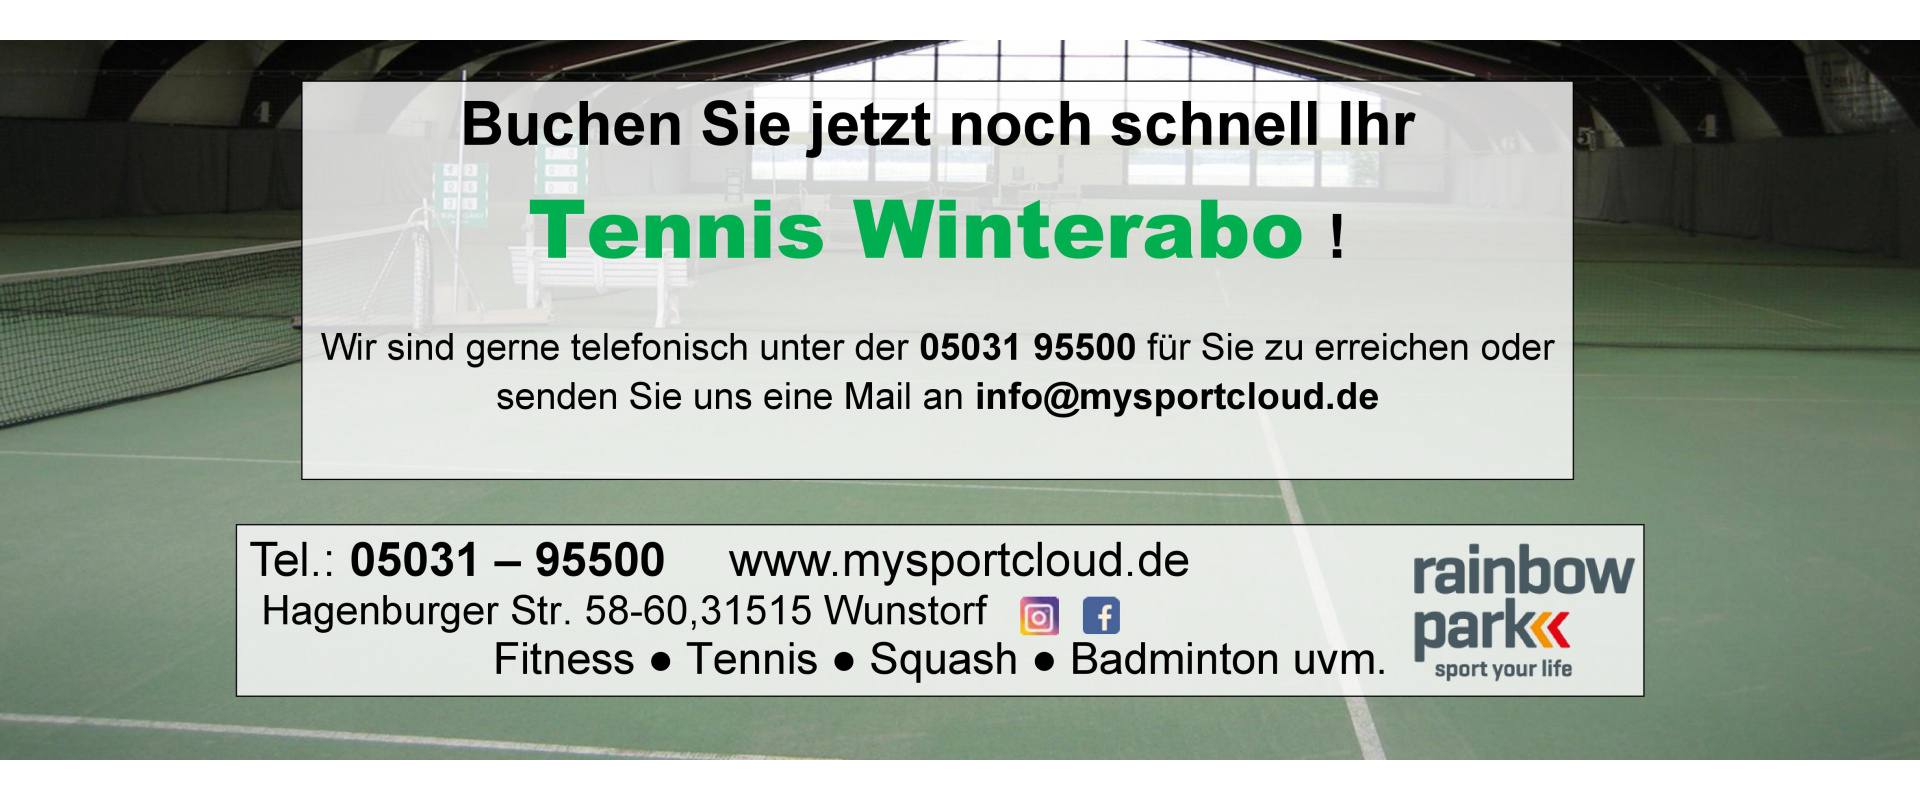 Tennis Winterabo